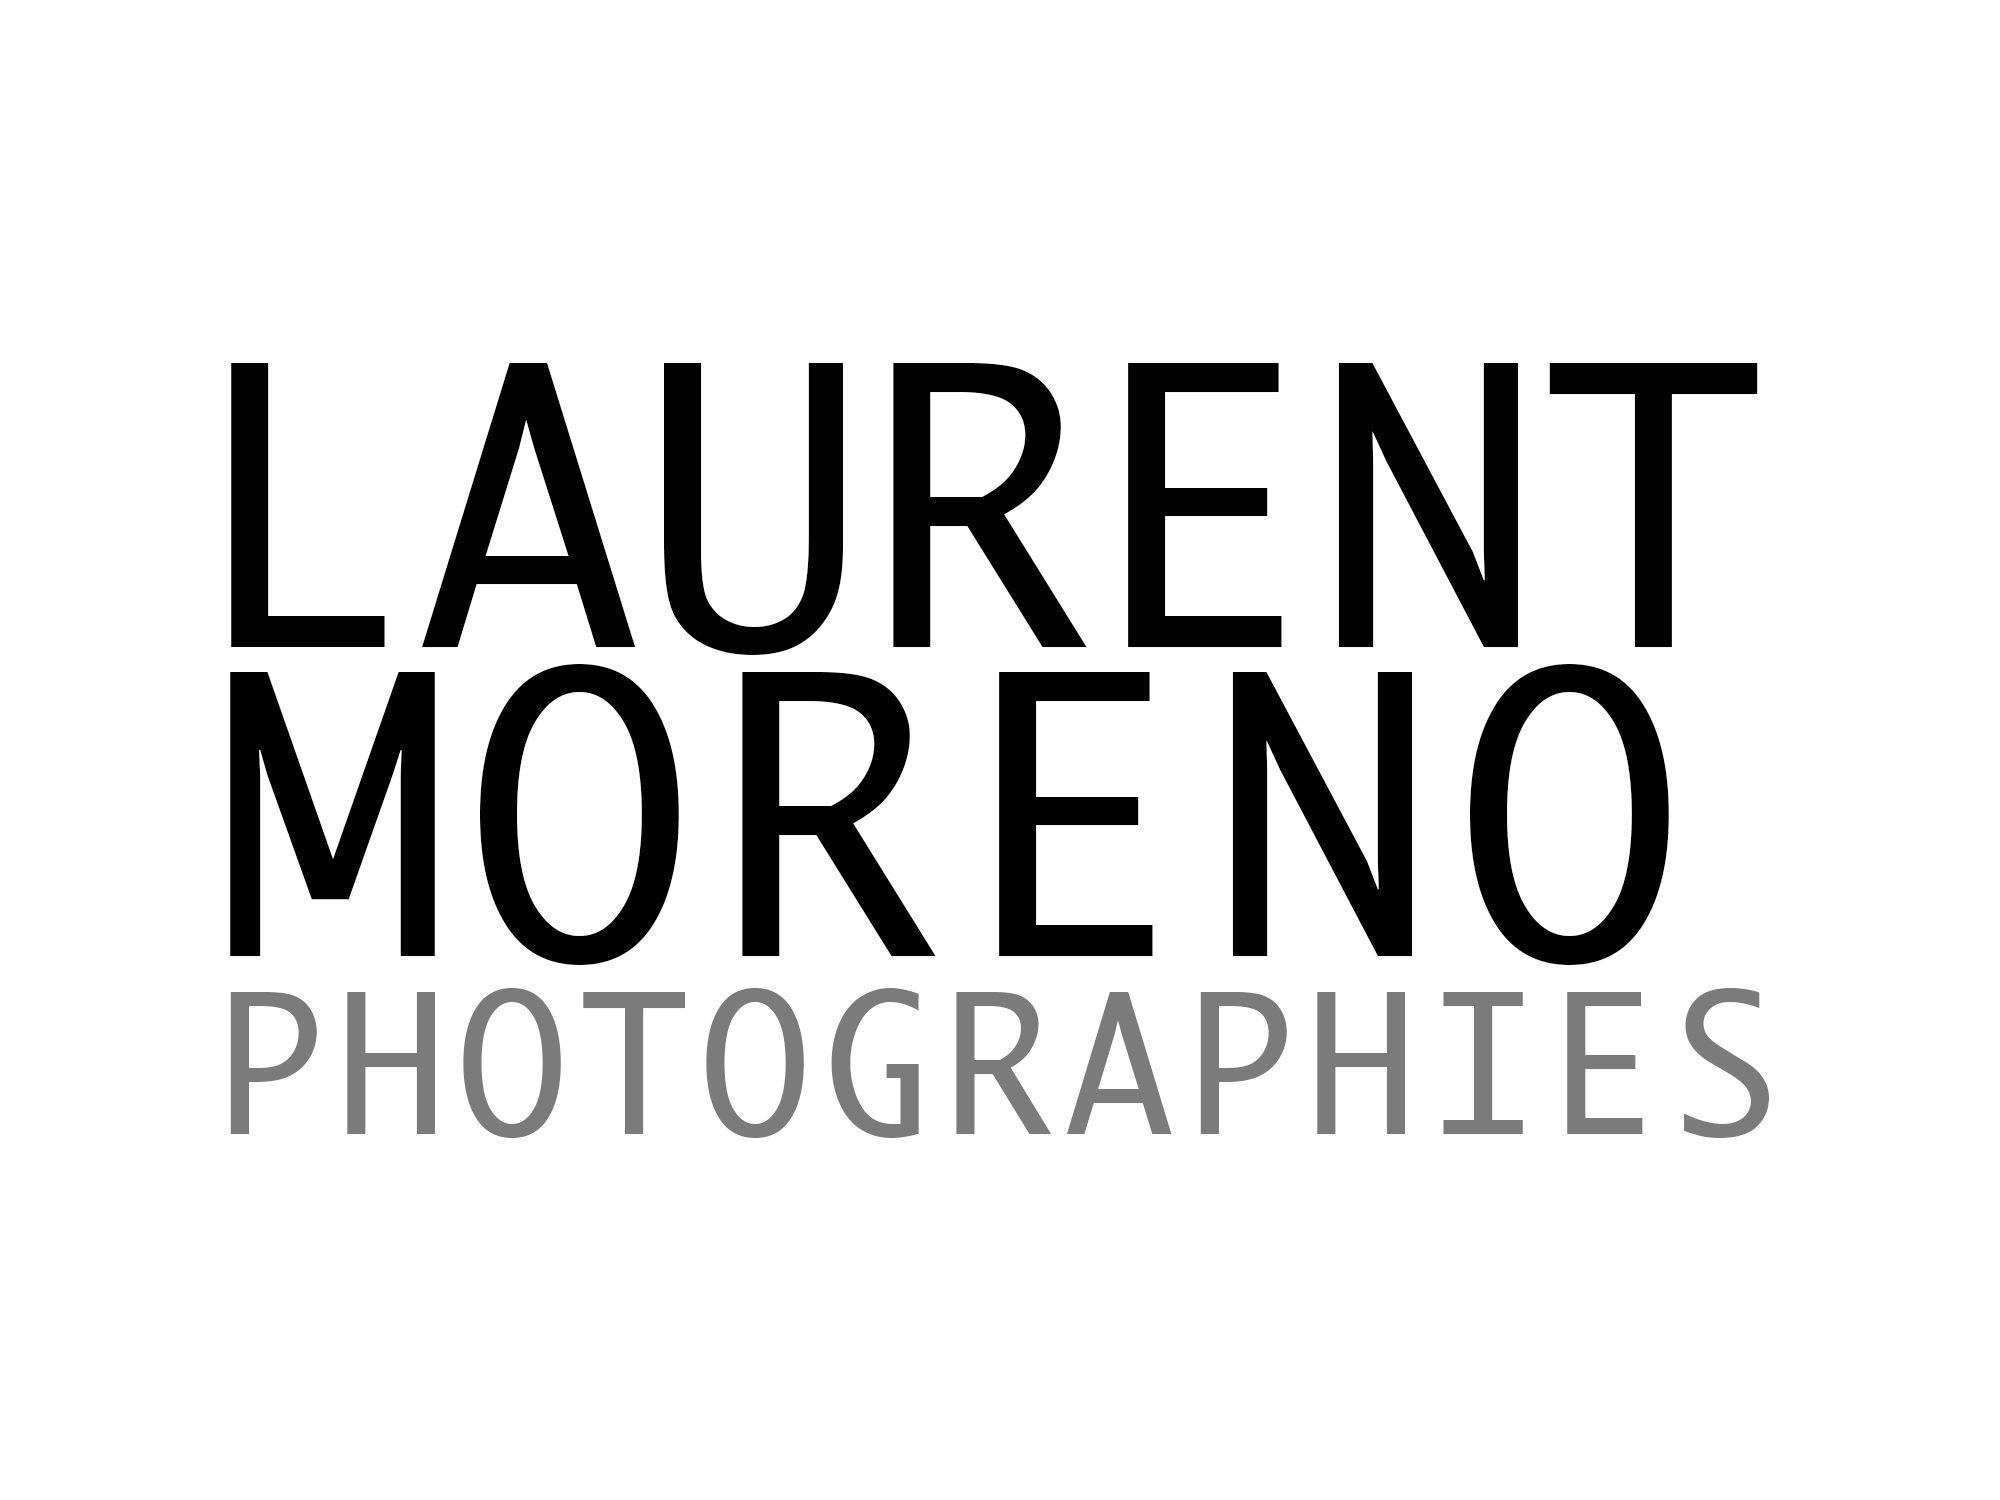 Laurent MORENO Photographies